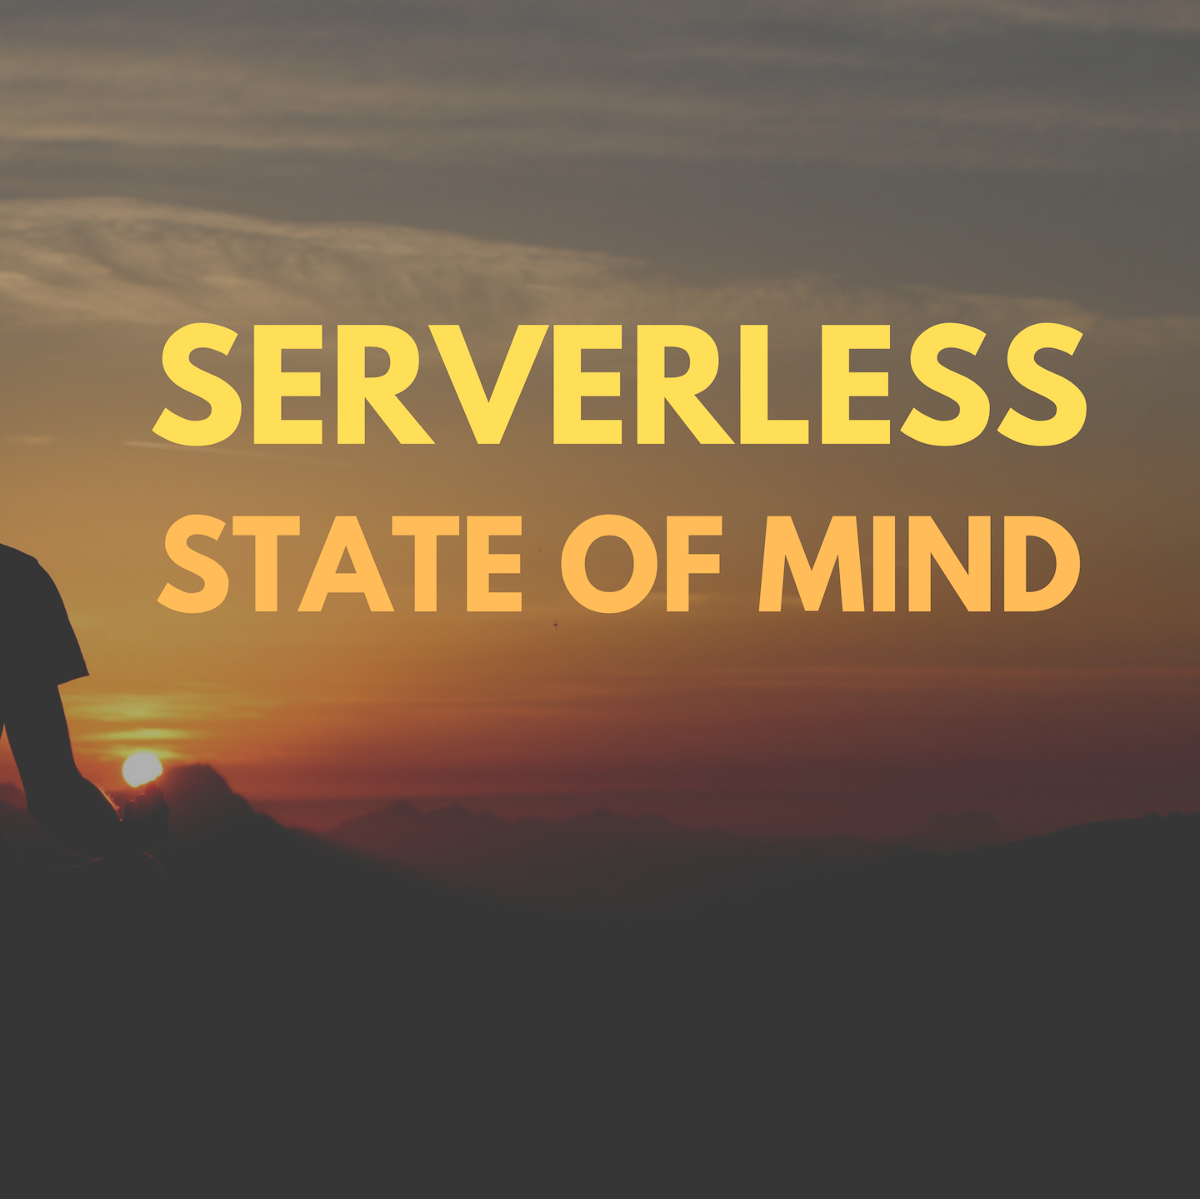 Serverless is a State of Mind